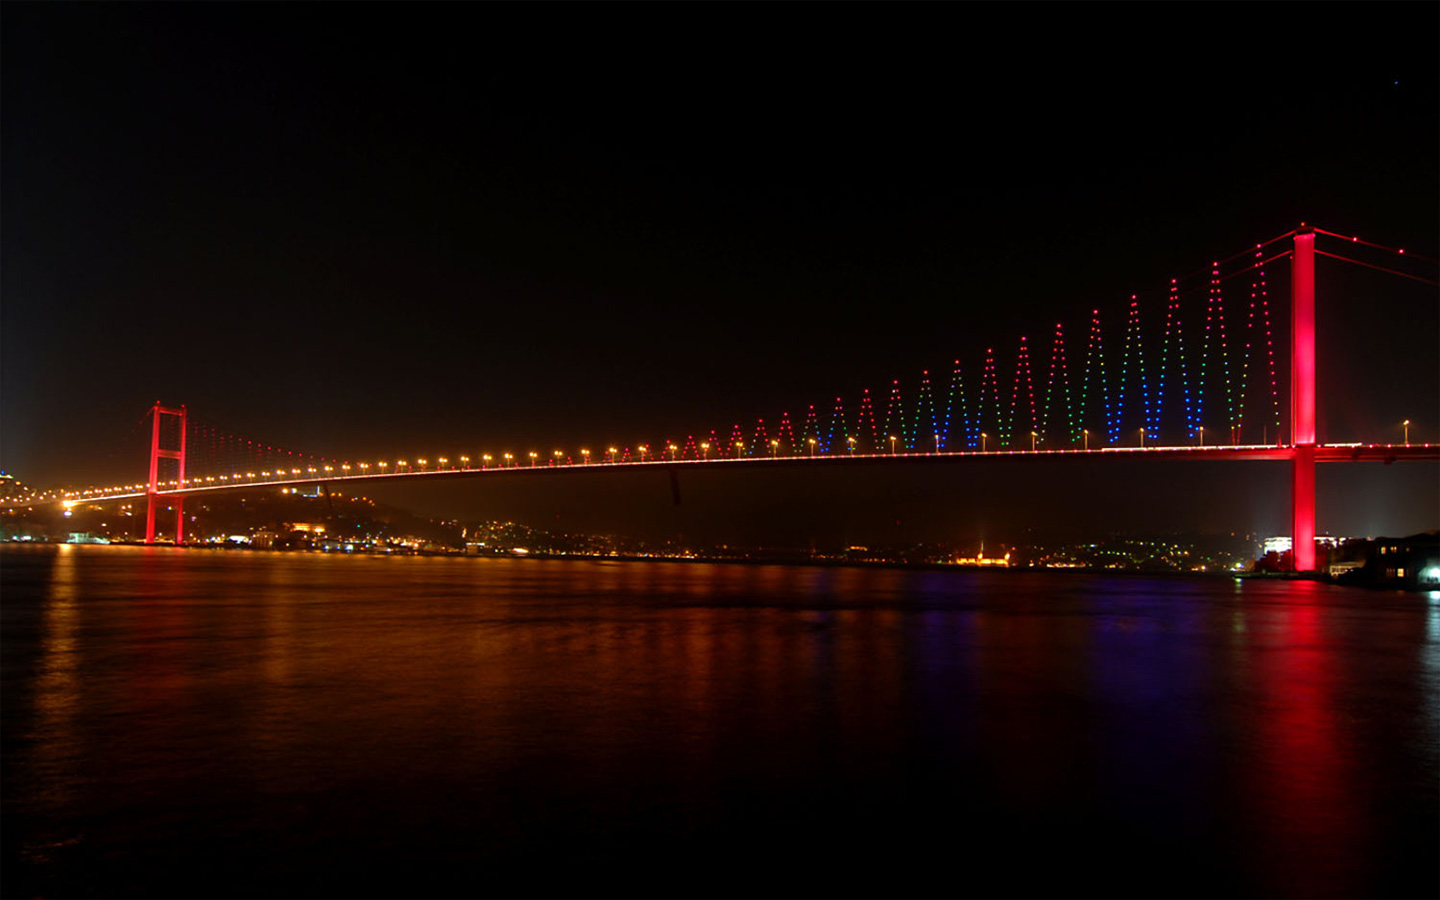 http://1.bp.blogspot.com/-M6TYW8s5qN8/TYiXN0u_SwI/AAAAAAAAAHc/ZBu418EeI0Q/s1600/istanbul_bosphorus_bridge_hd_widescreen_wallpapers_1440x900.jpg